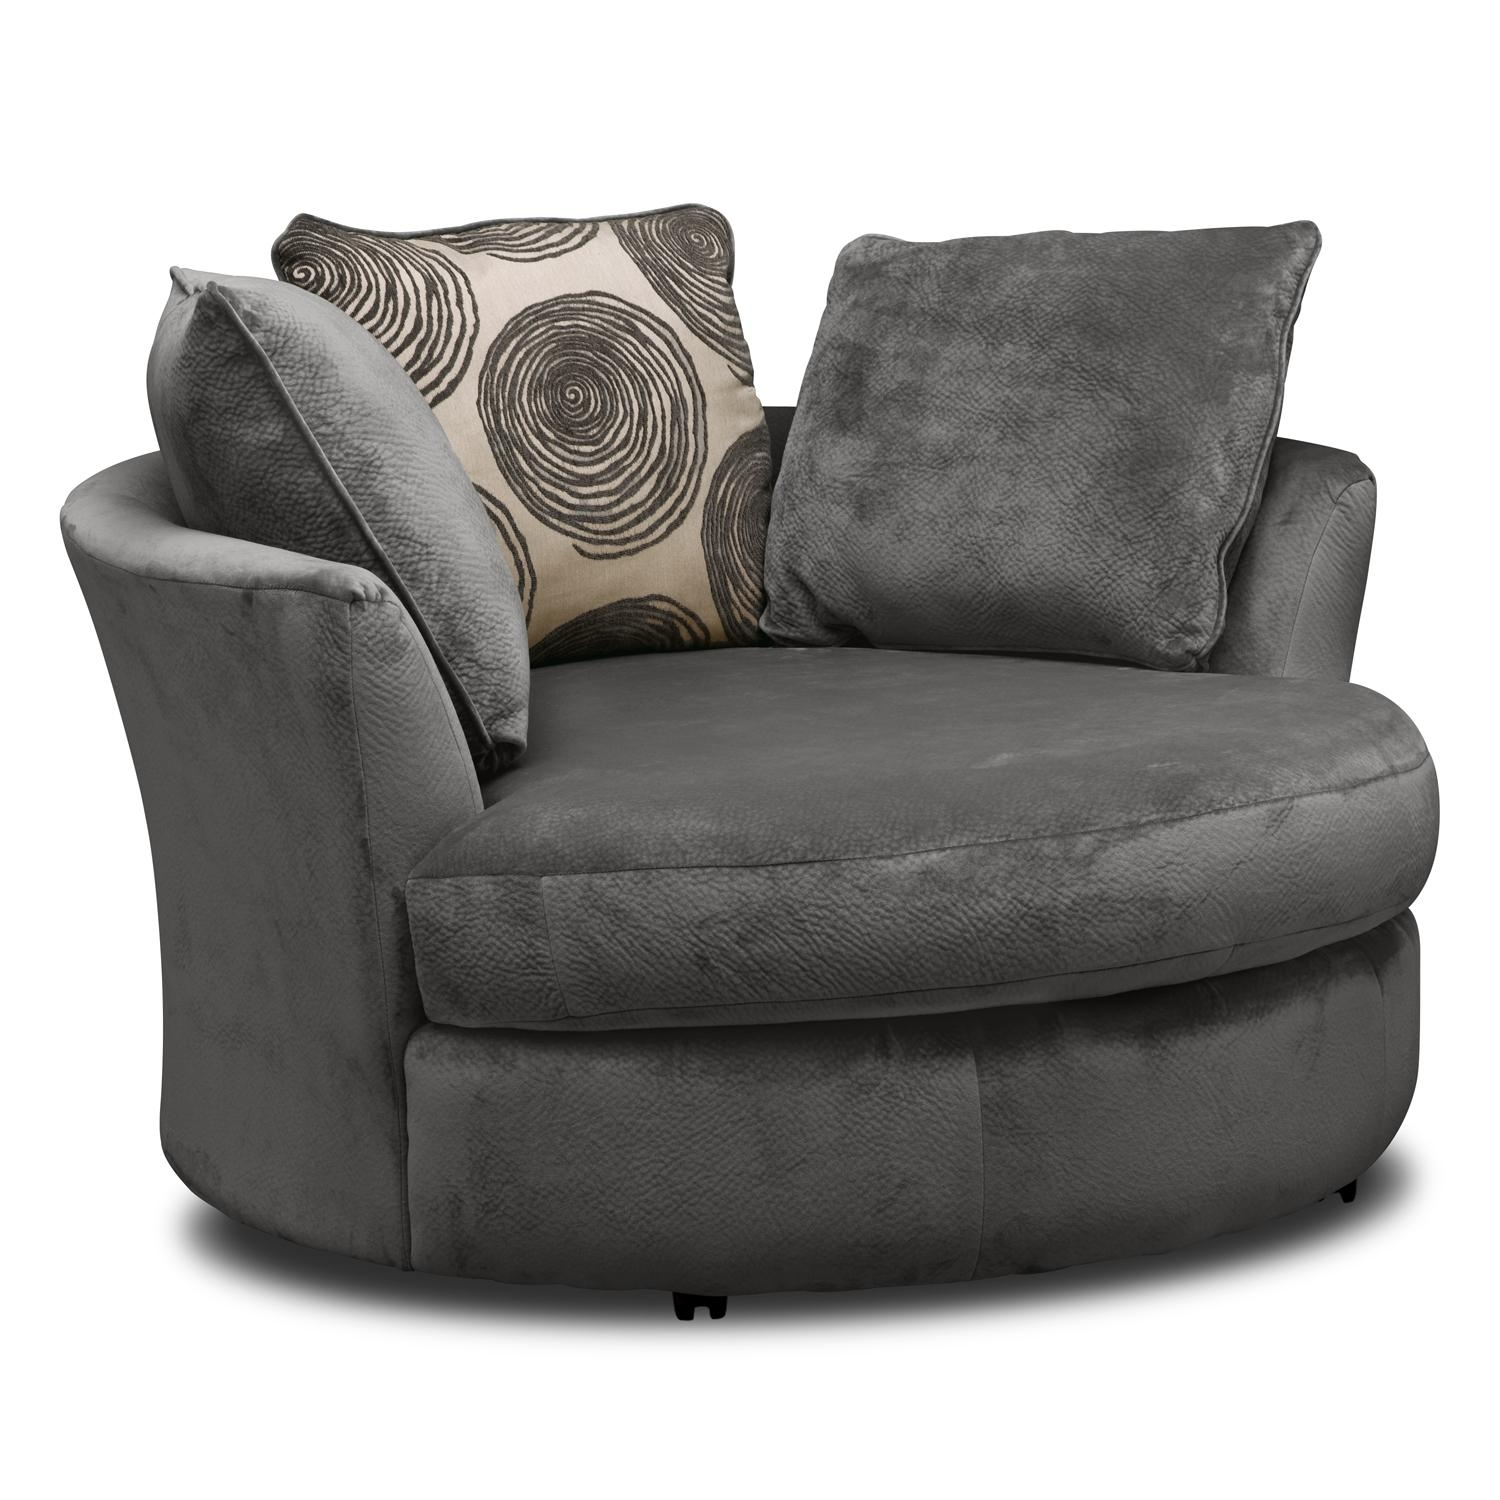 Round Sofa Chair Throughout Large Sofa Chairs (View 5 of 20)